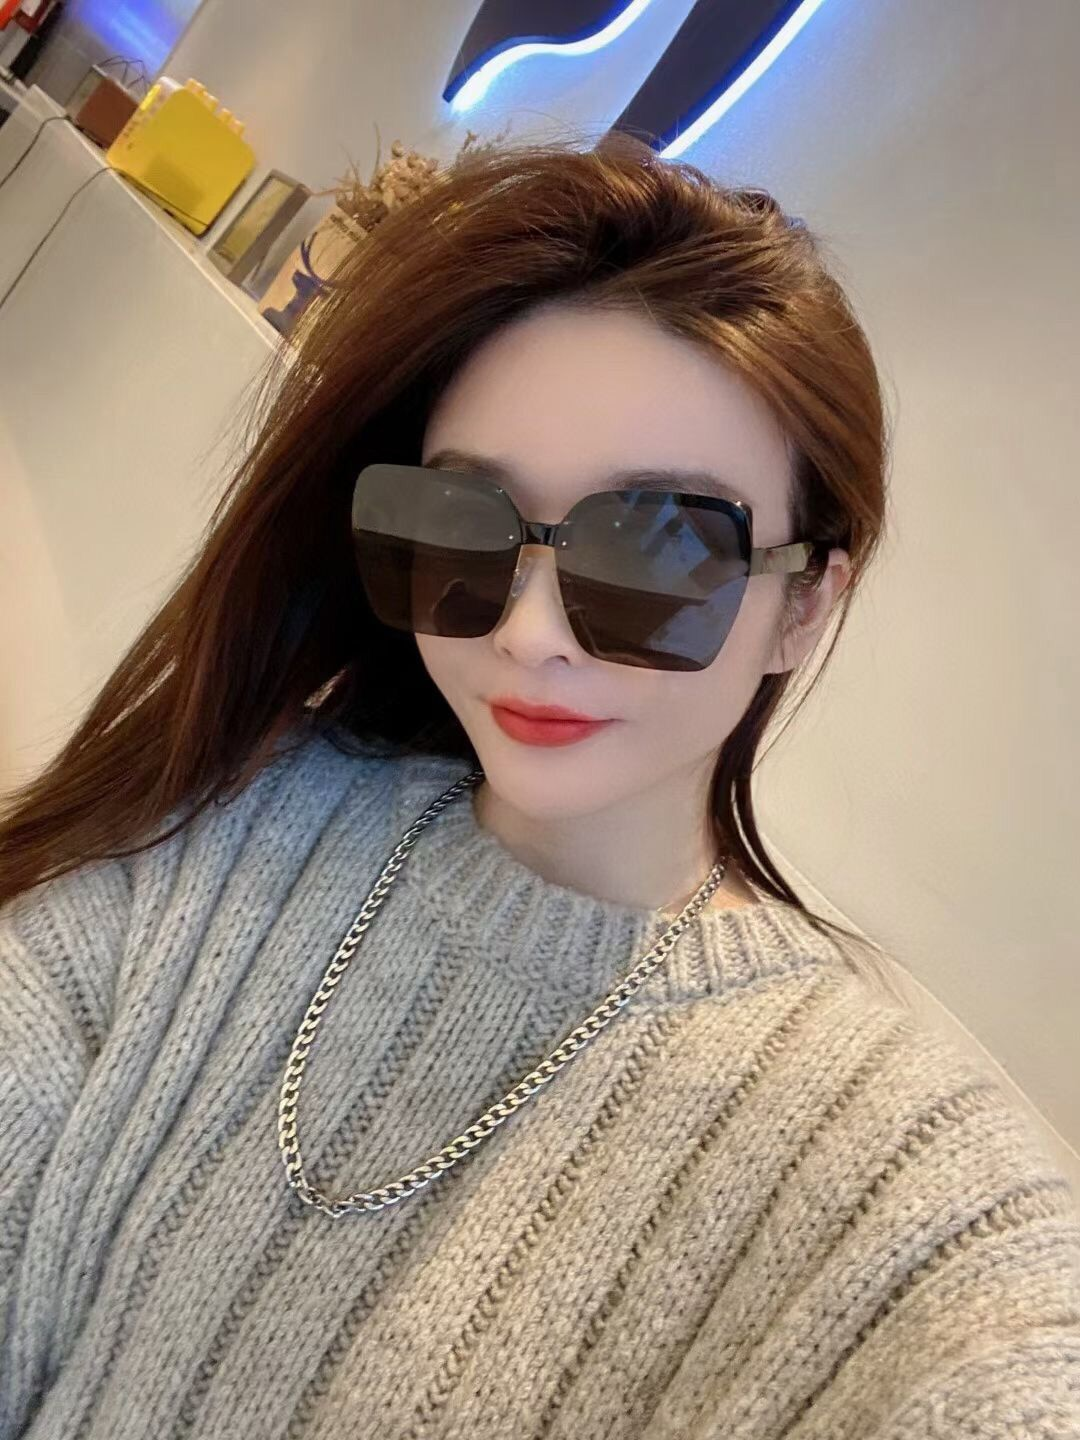 With Box Sunglasses Women Fashion Vintage Shades Brand Fashion Designer Luxury Sun Glasses Oversized